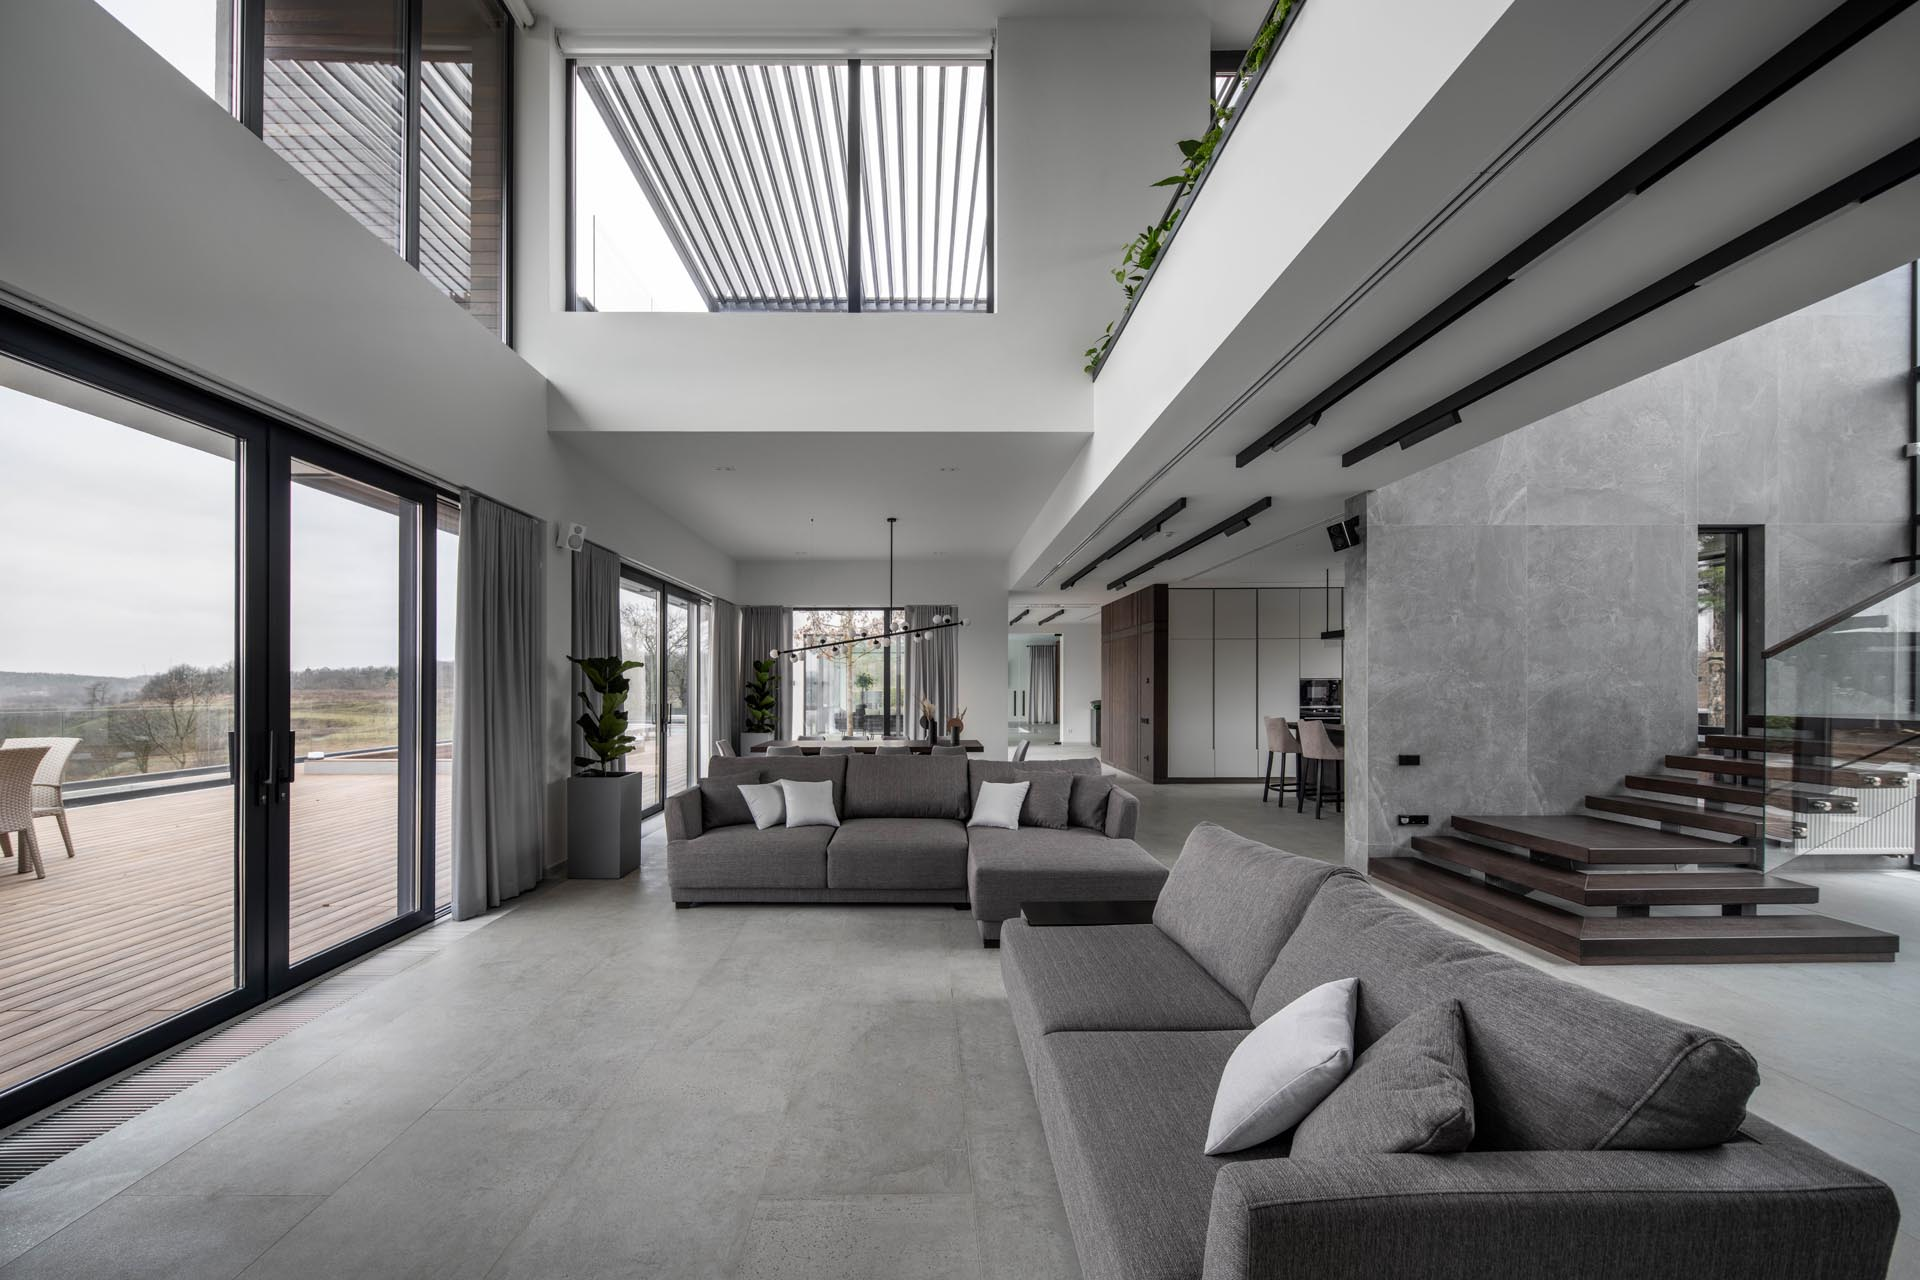 A modern living room with a gray color palette and double height ceiling.